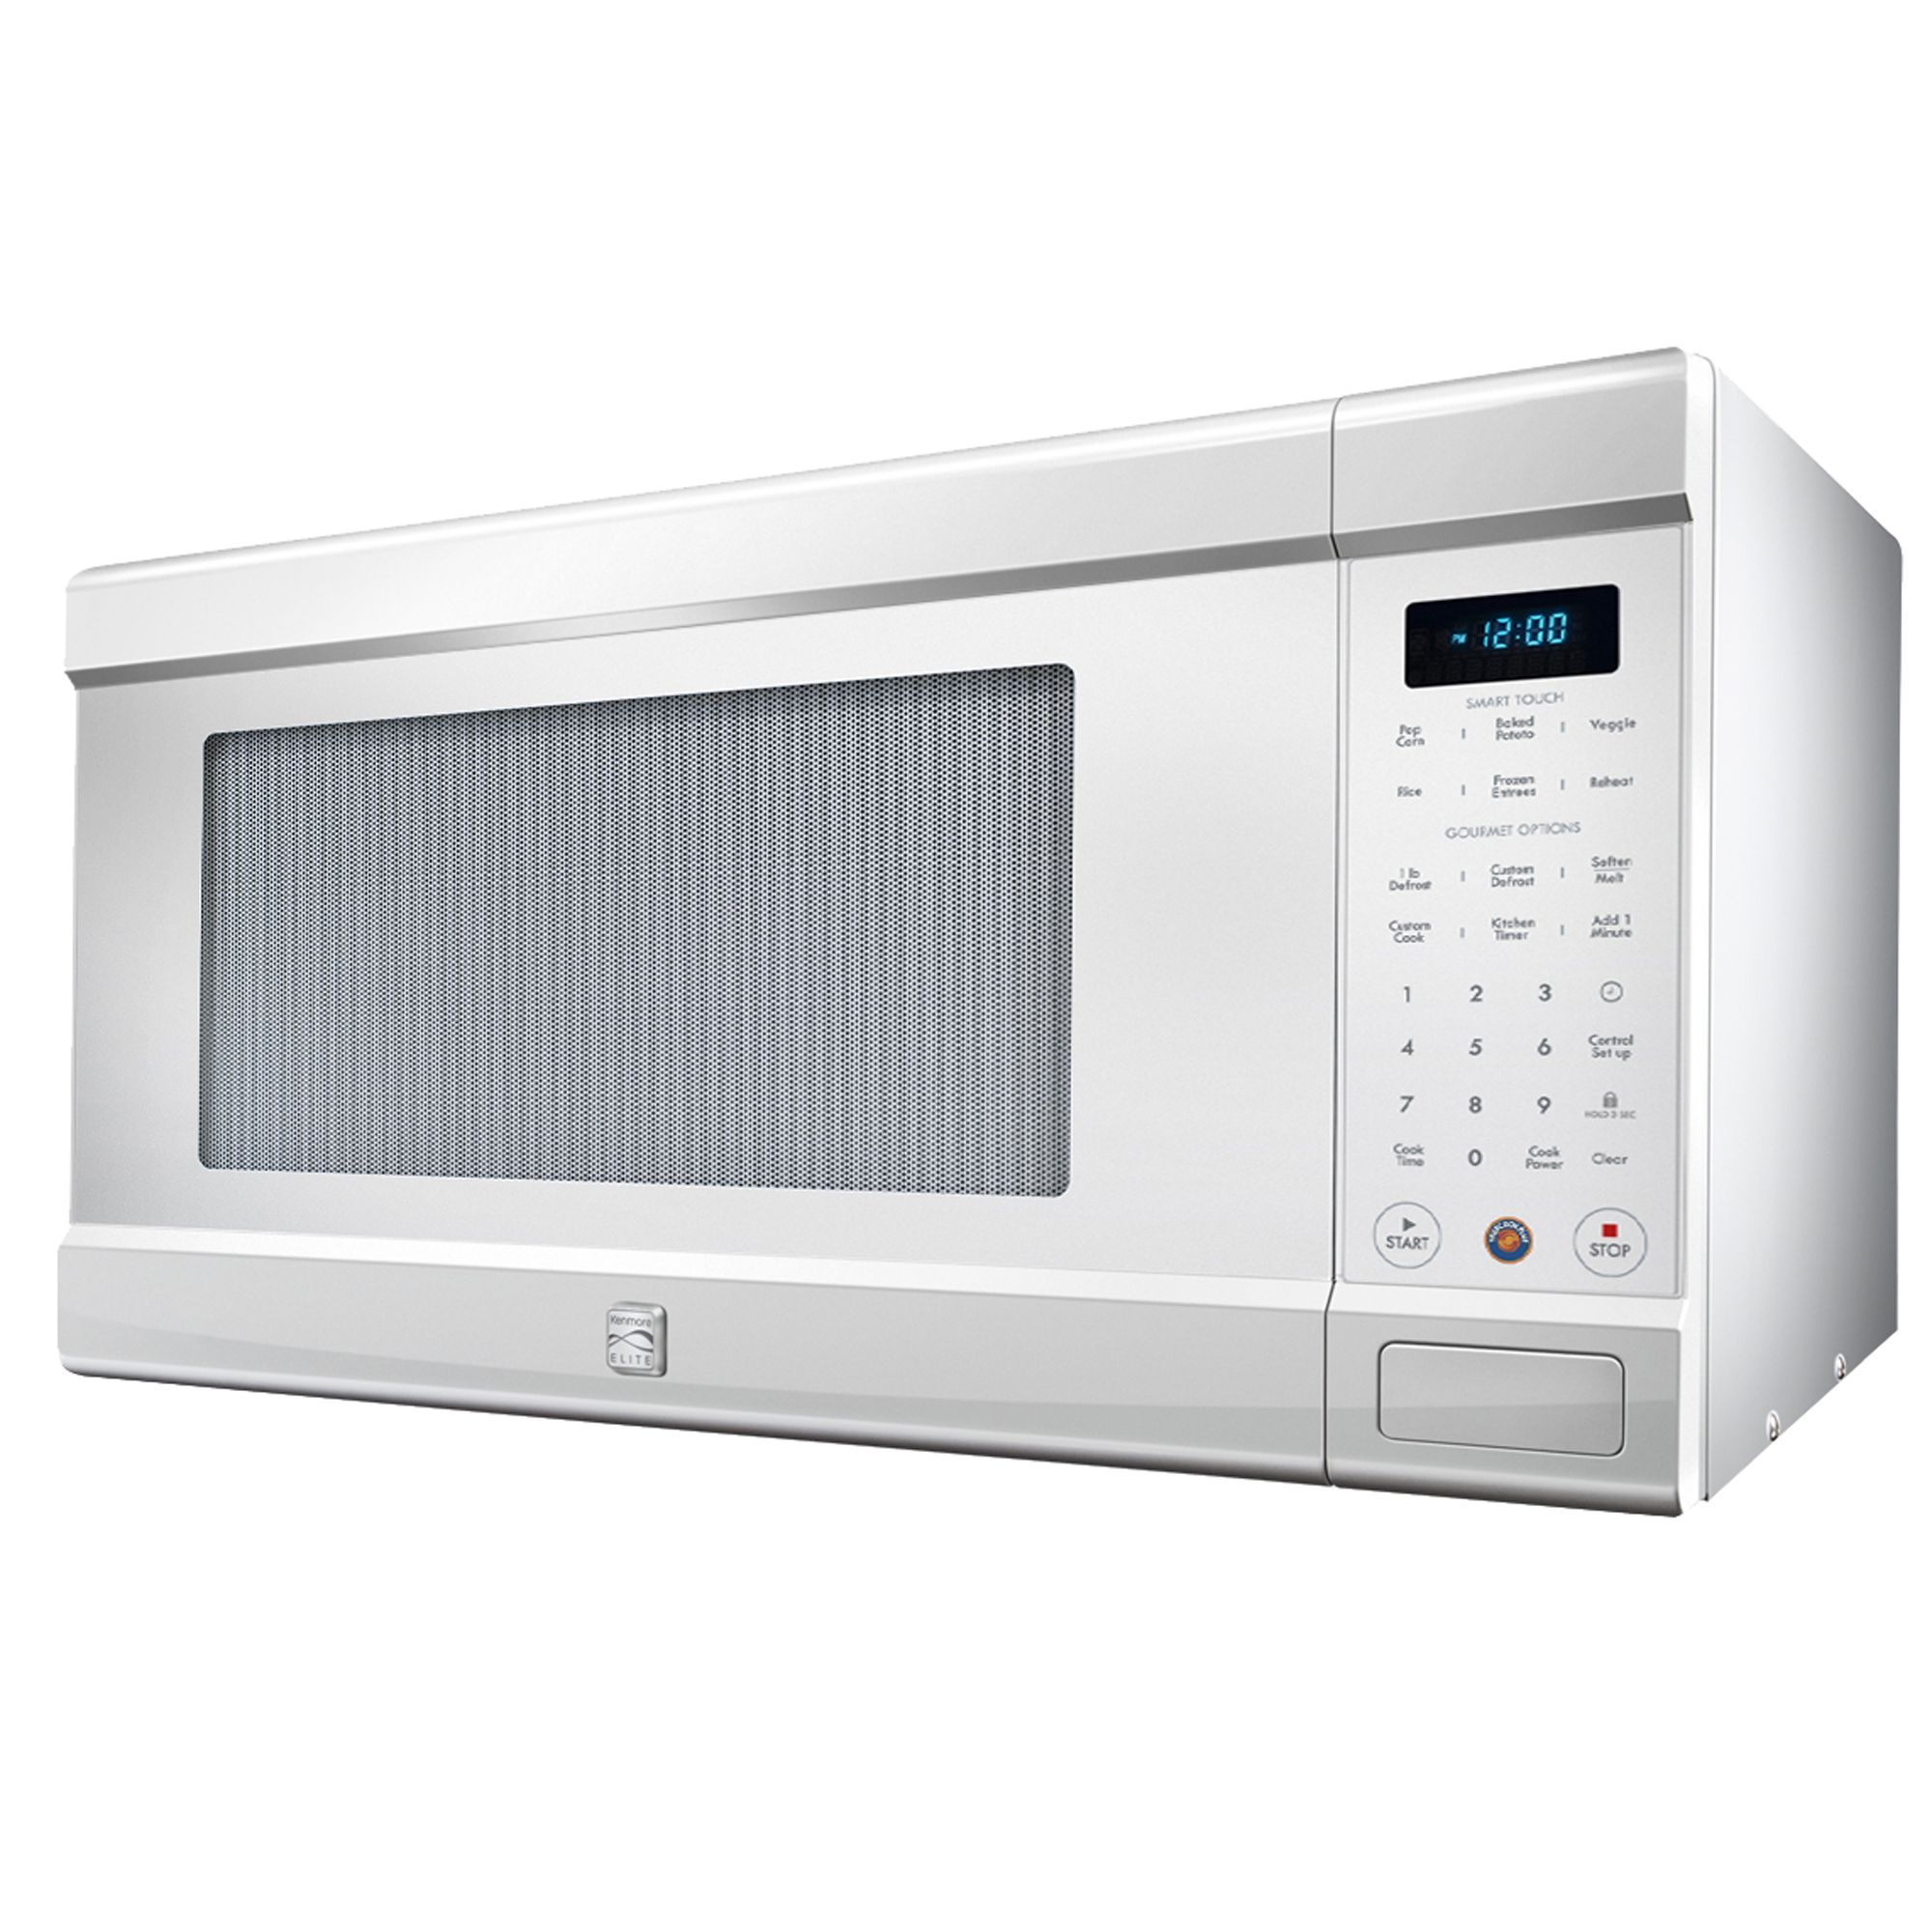 Kenmore Elite 2.0 cu. ft. Countertop Microwave Oven